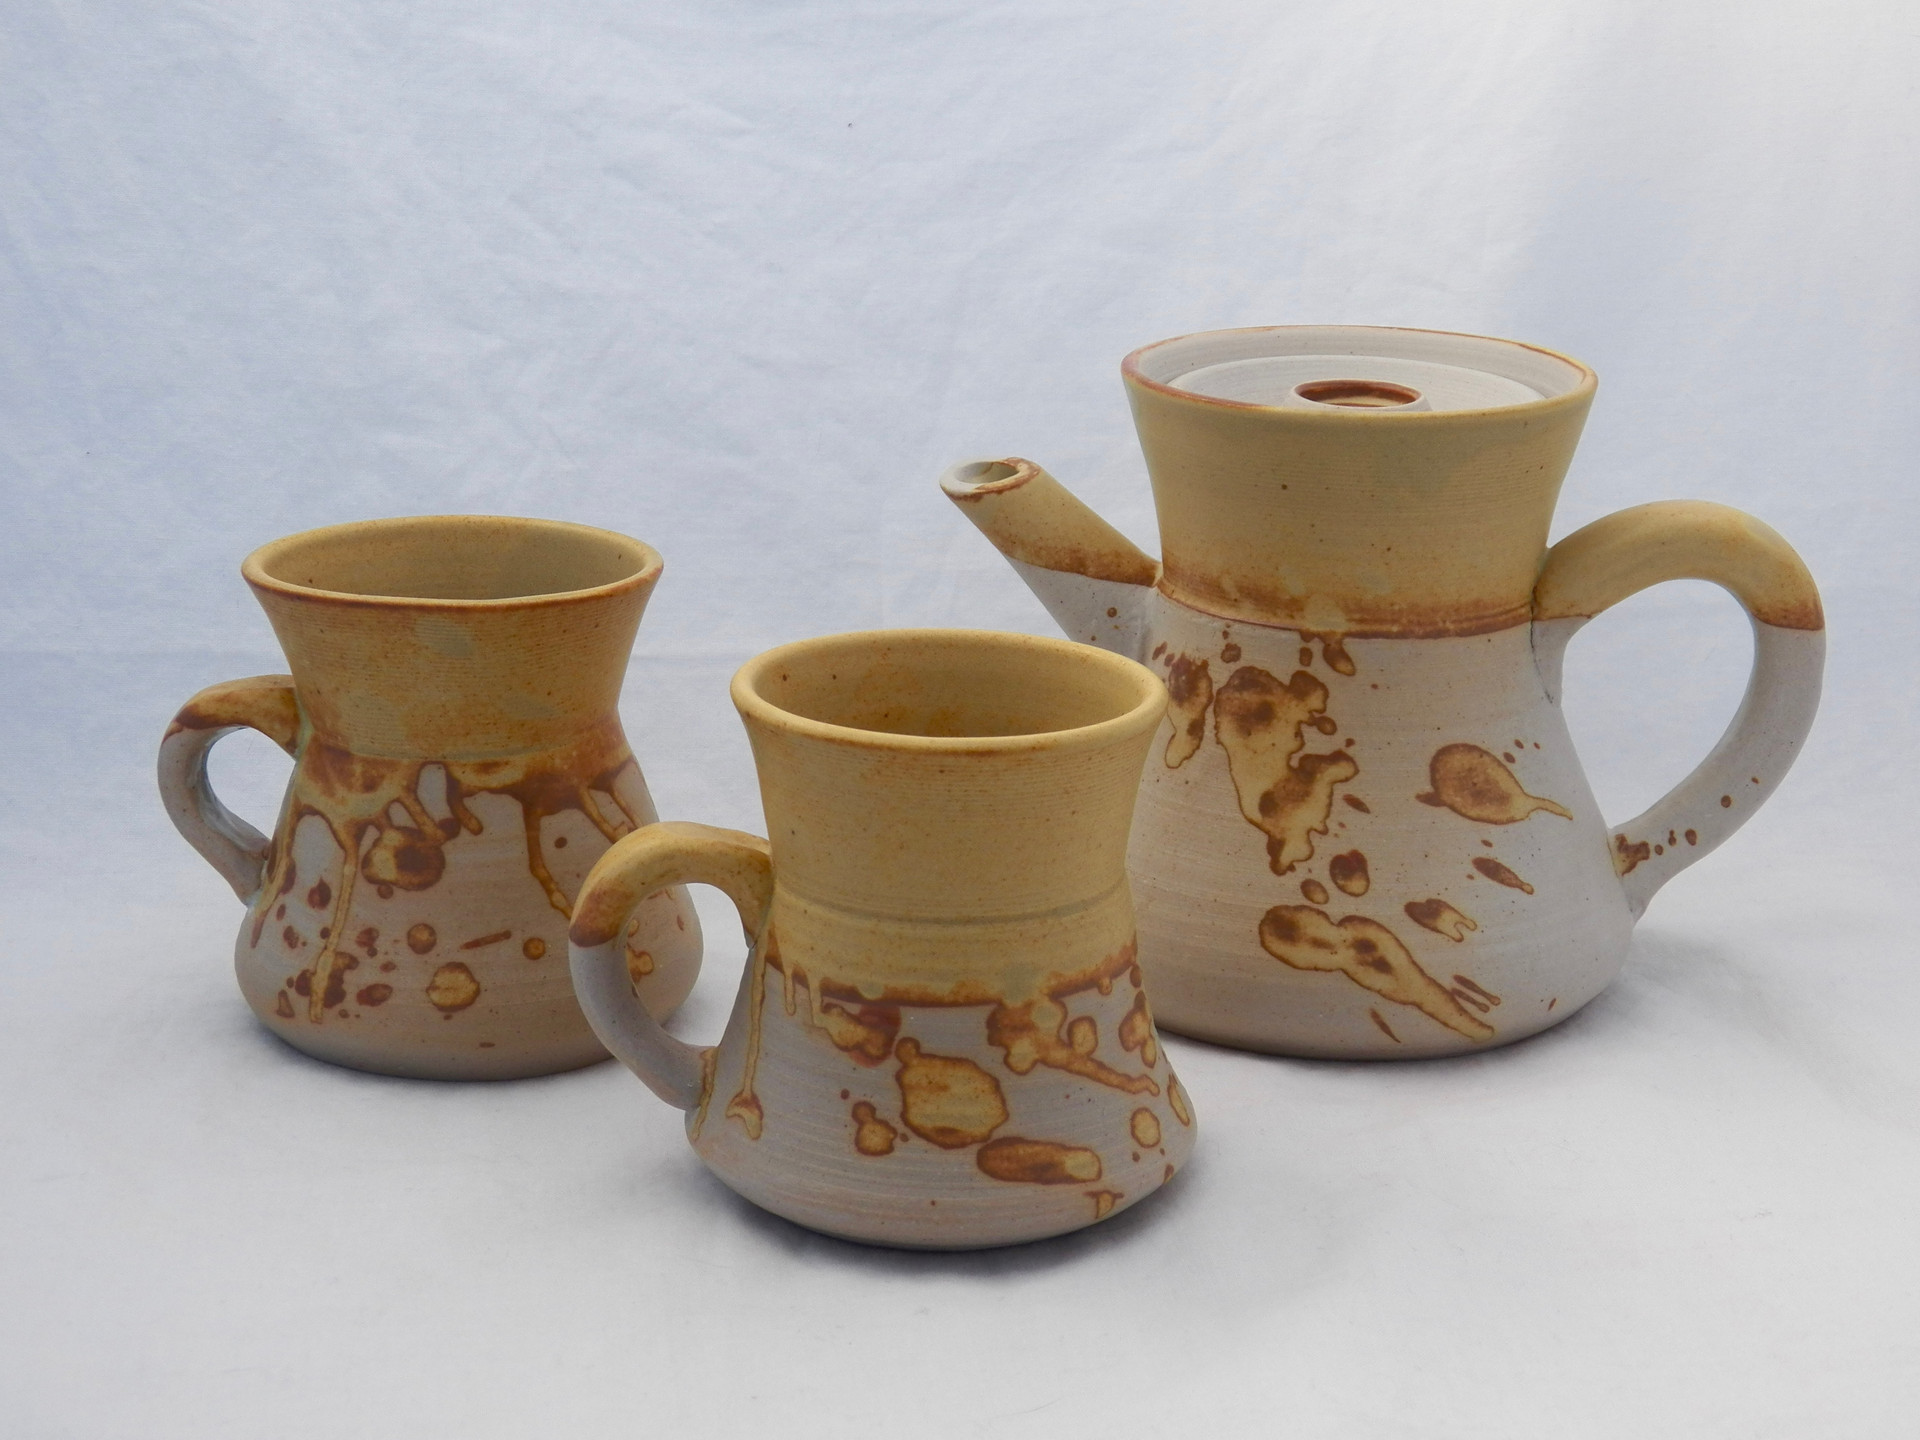 Golden Coffee Set with Bowls 2017